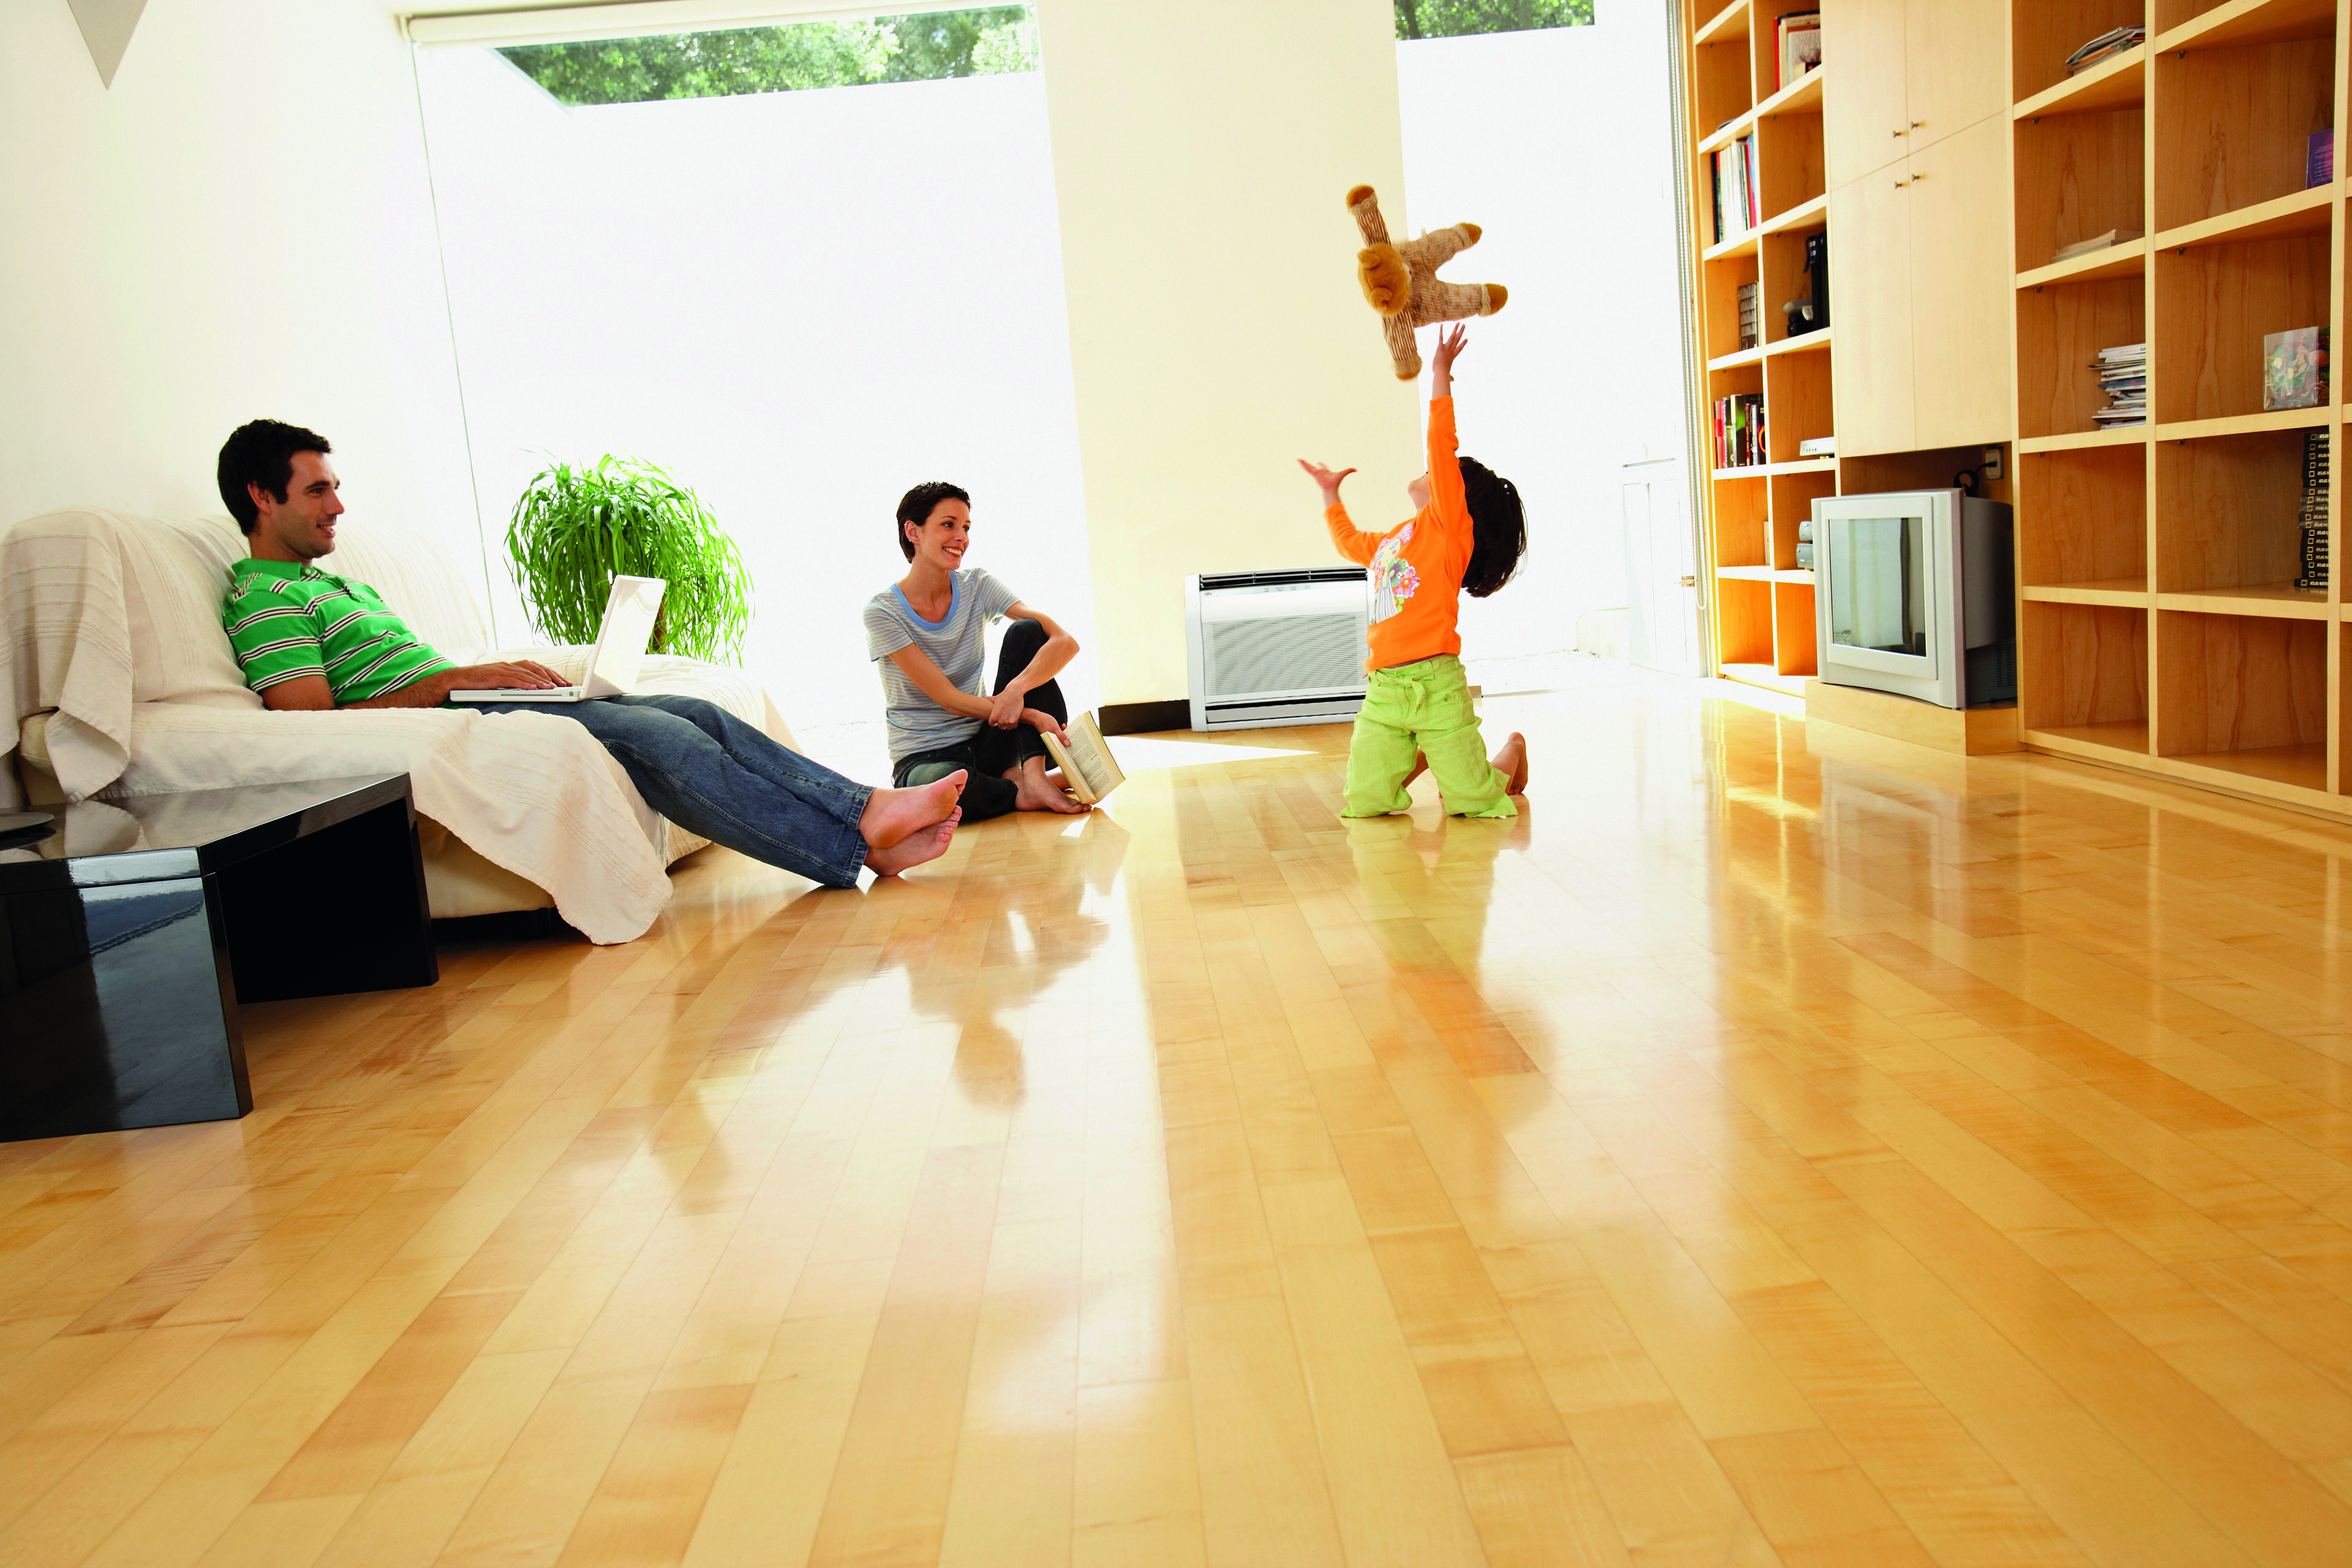 Children playing in the room with wooden surface